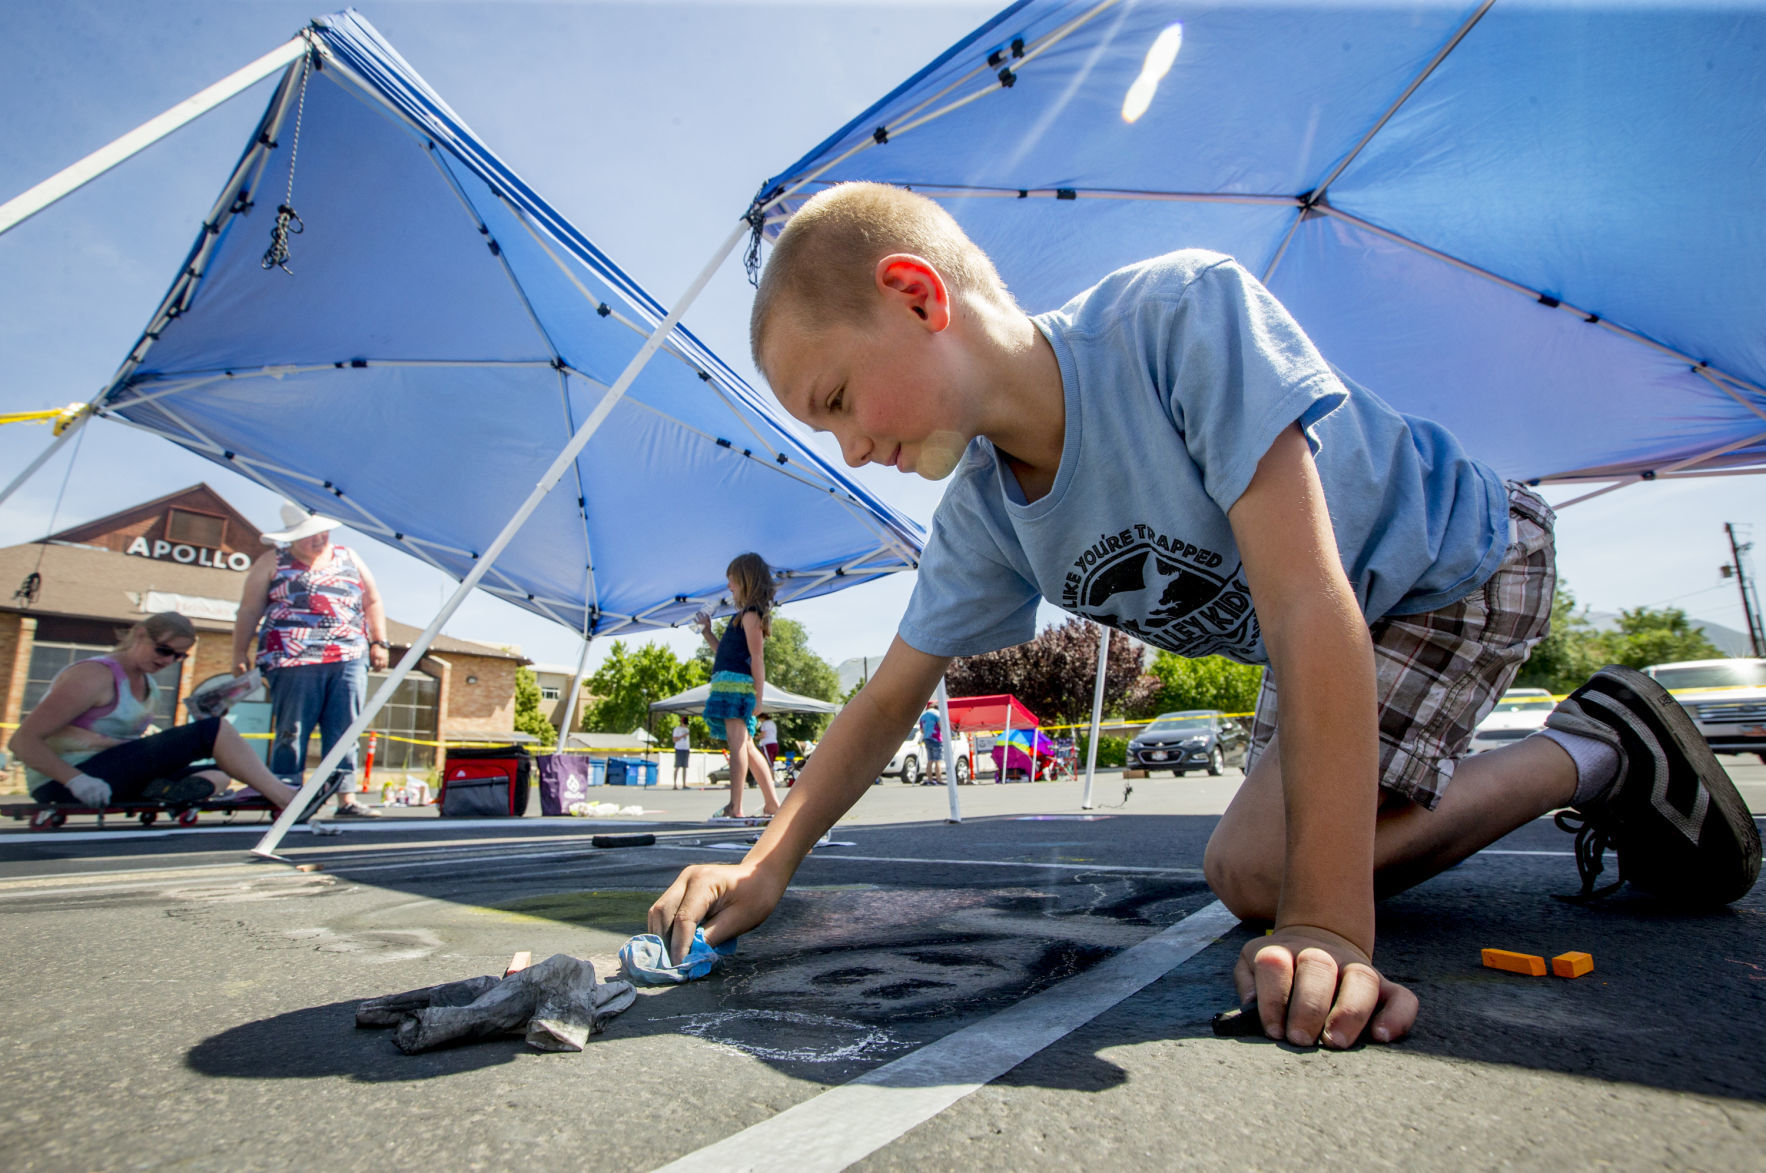 Photos: Chalk art festival brightens up American Fork Steel Days